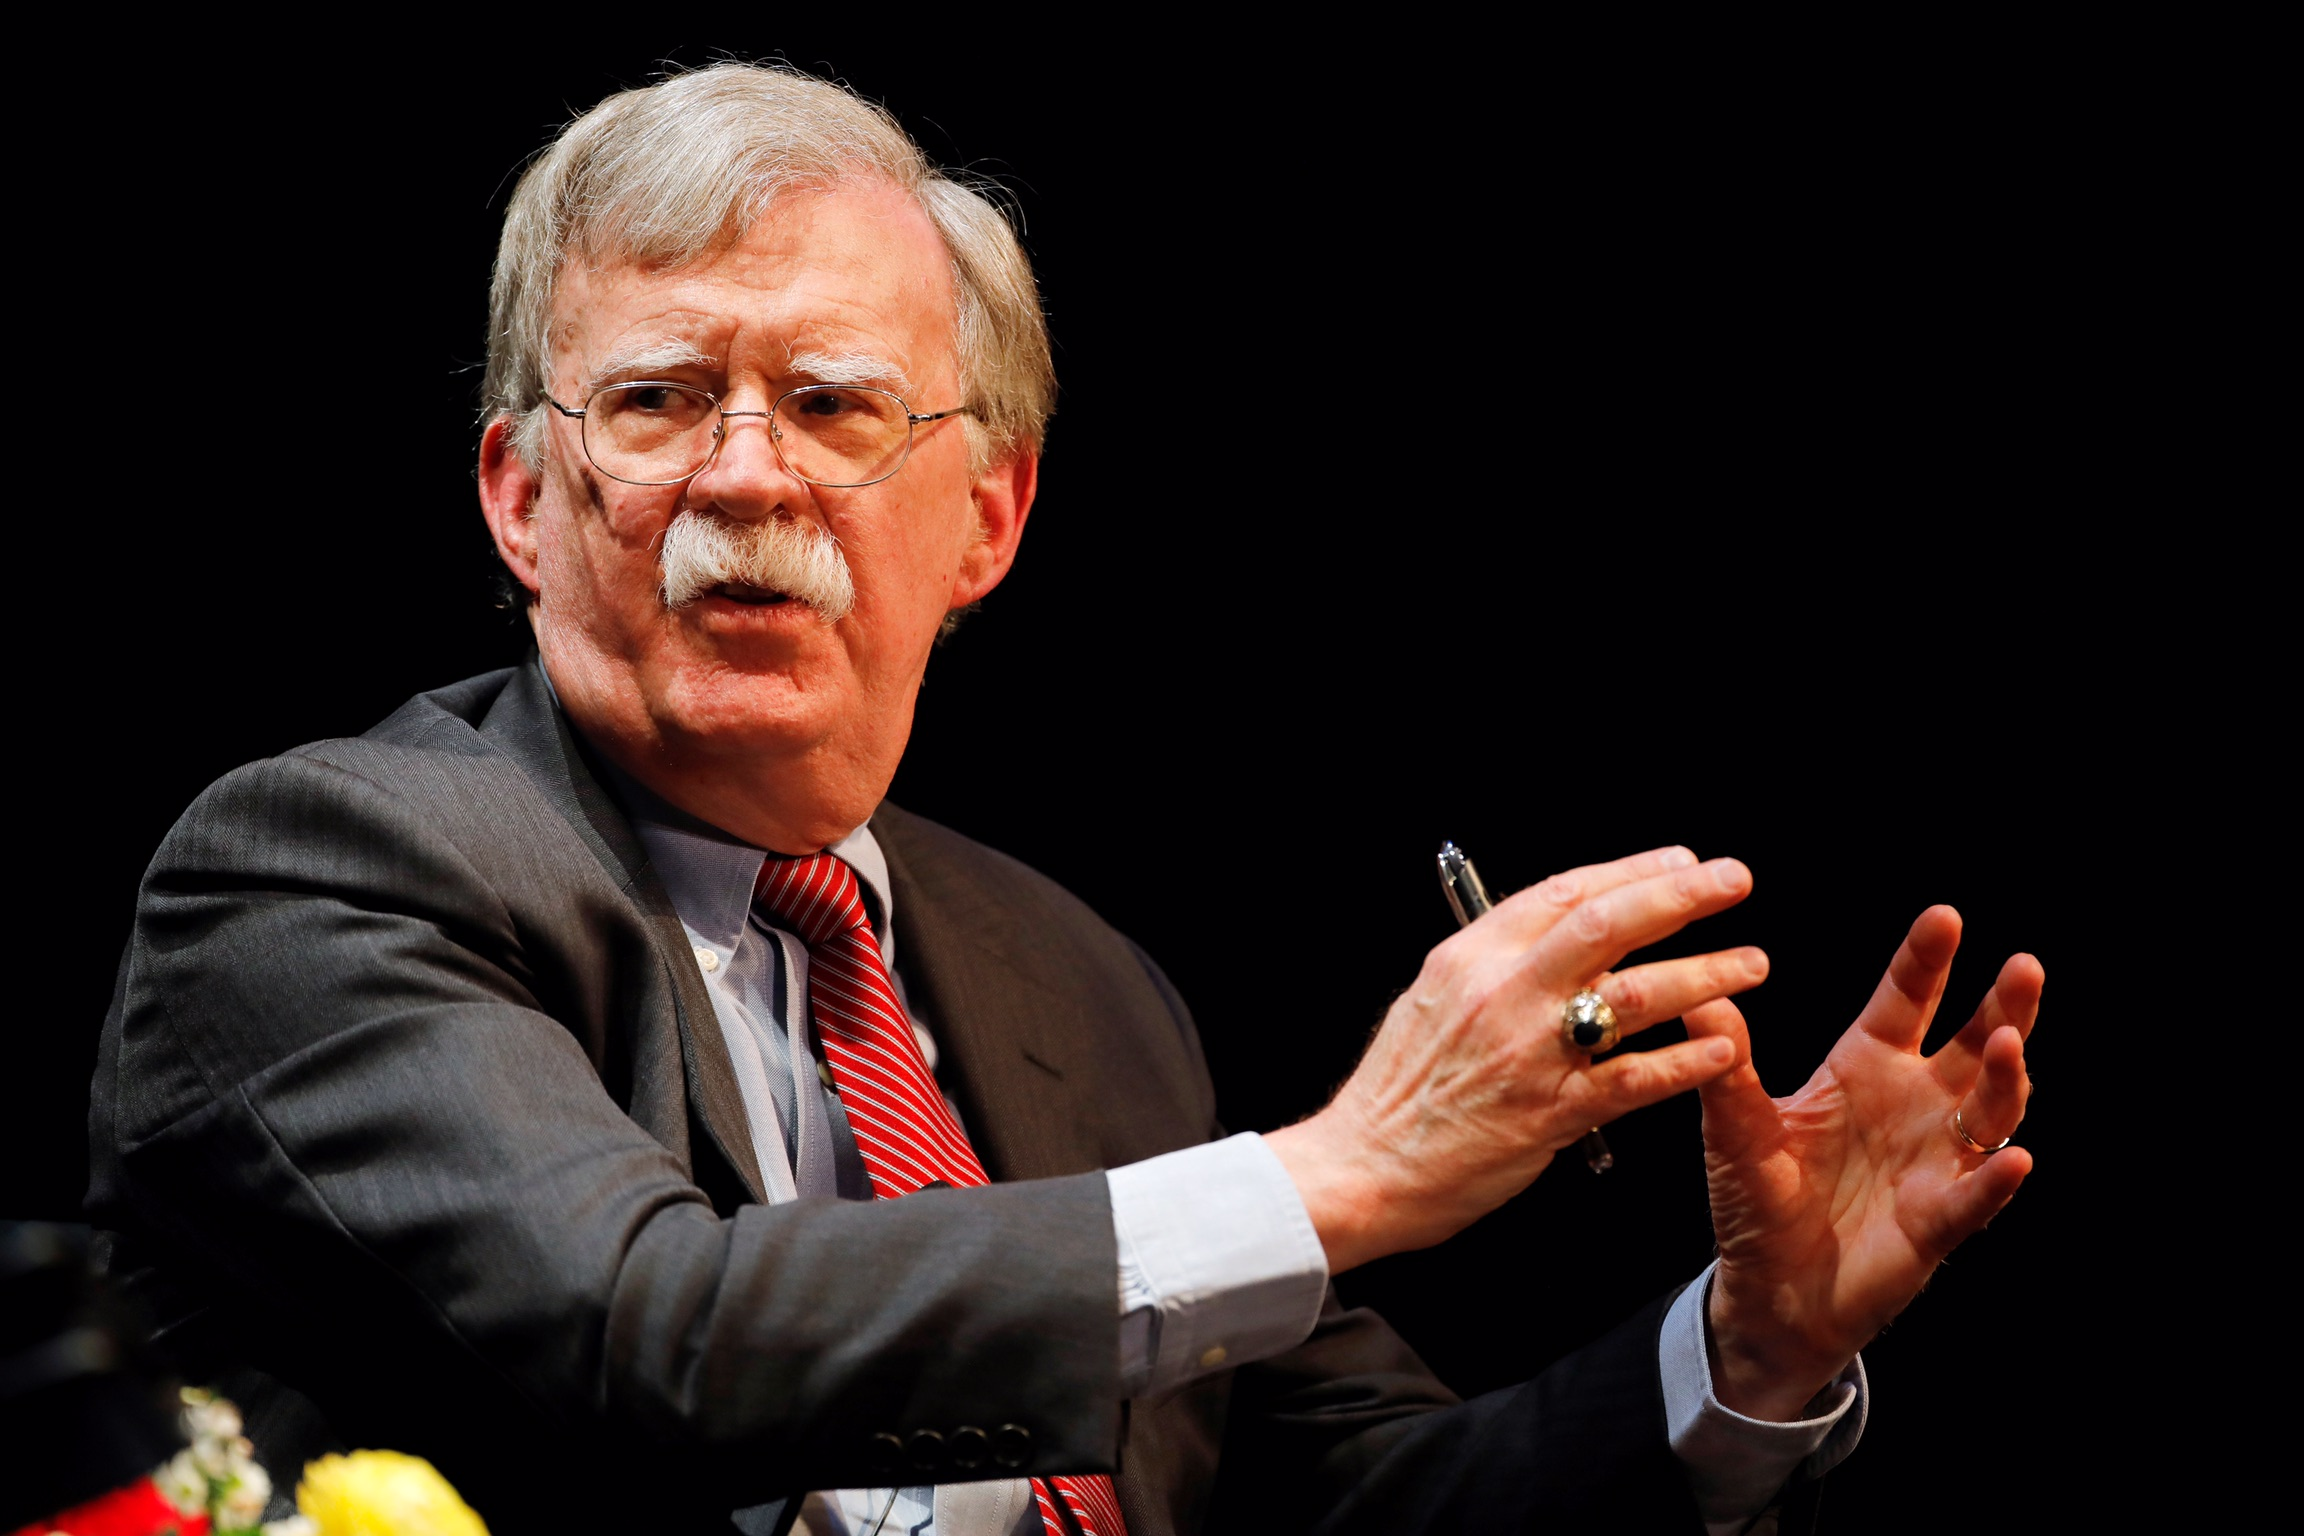 Former U.S. national security advisor John Bolton speaks during his lecture at Duke University in Durham, North Carolina, U.S. February 17, 2020. REUTERS/Jonathan Drake